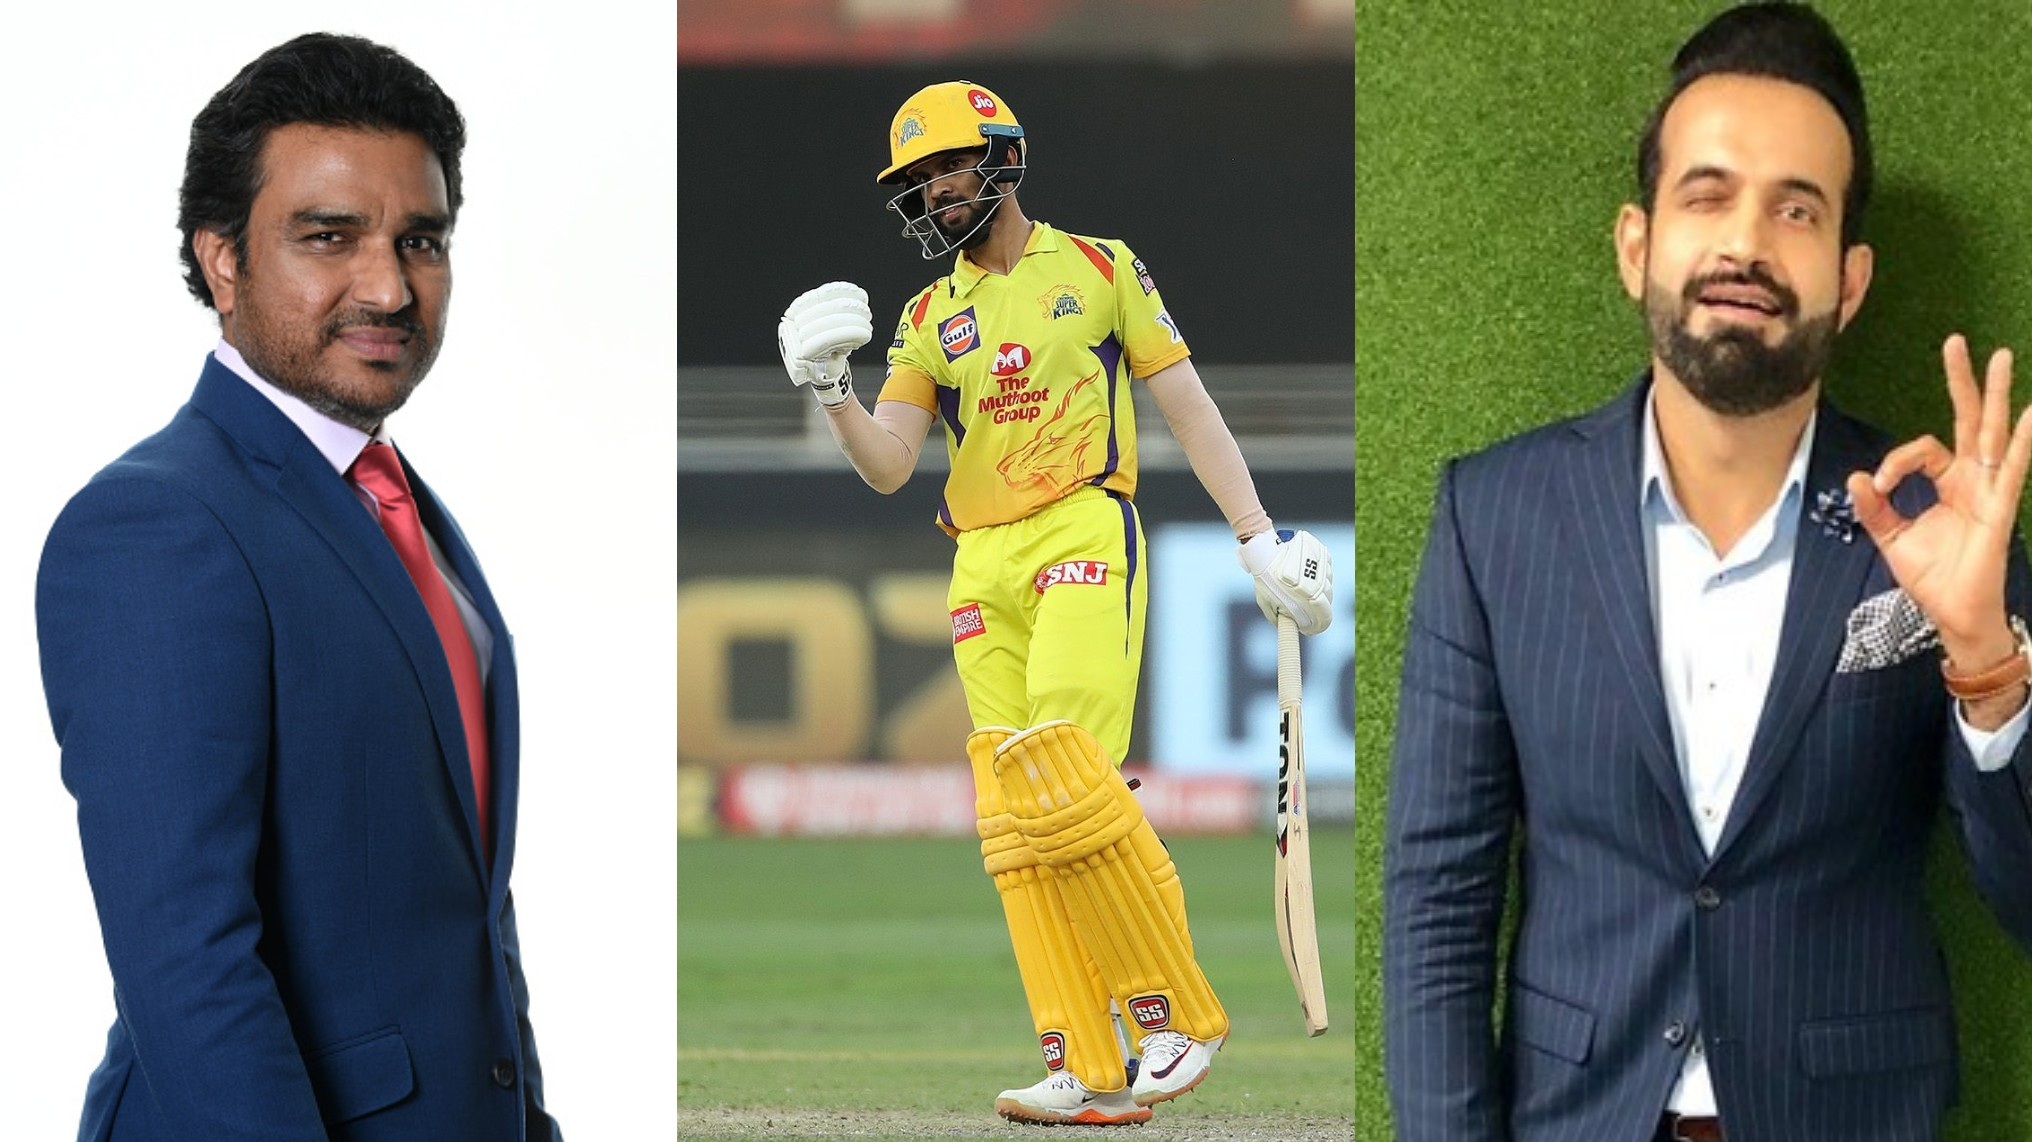 IPL 2020: Cricket fraternity reacts as CSK defeats RCB by 8 wickets; Gaikwad shows spark with 65*